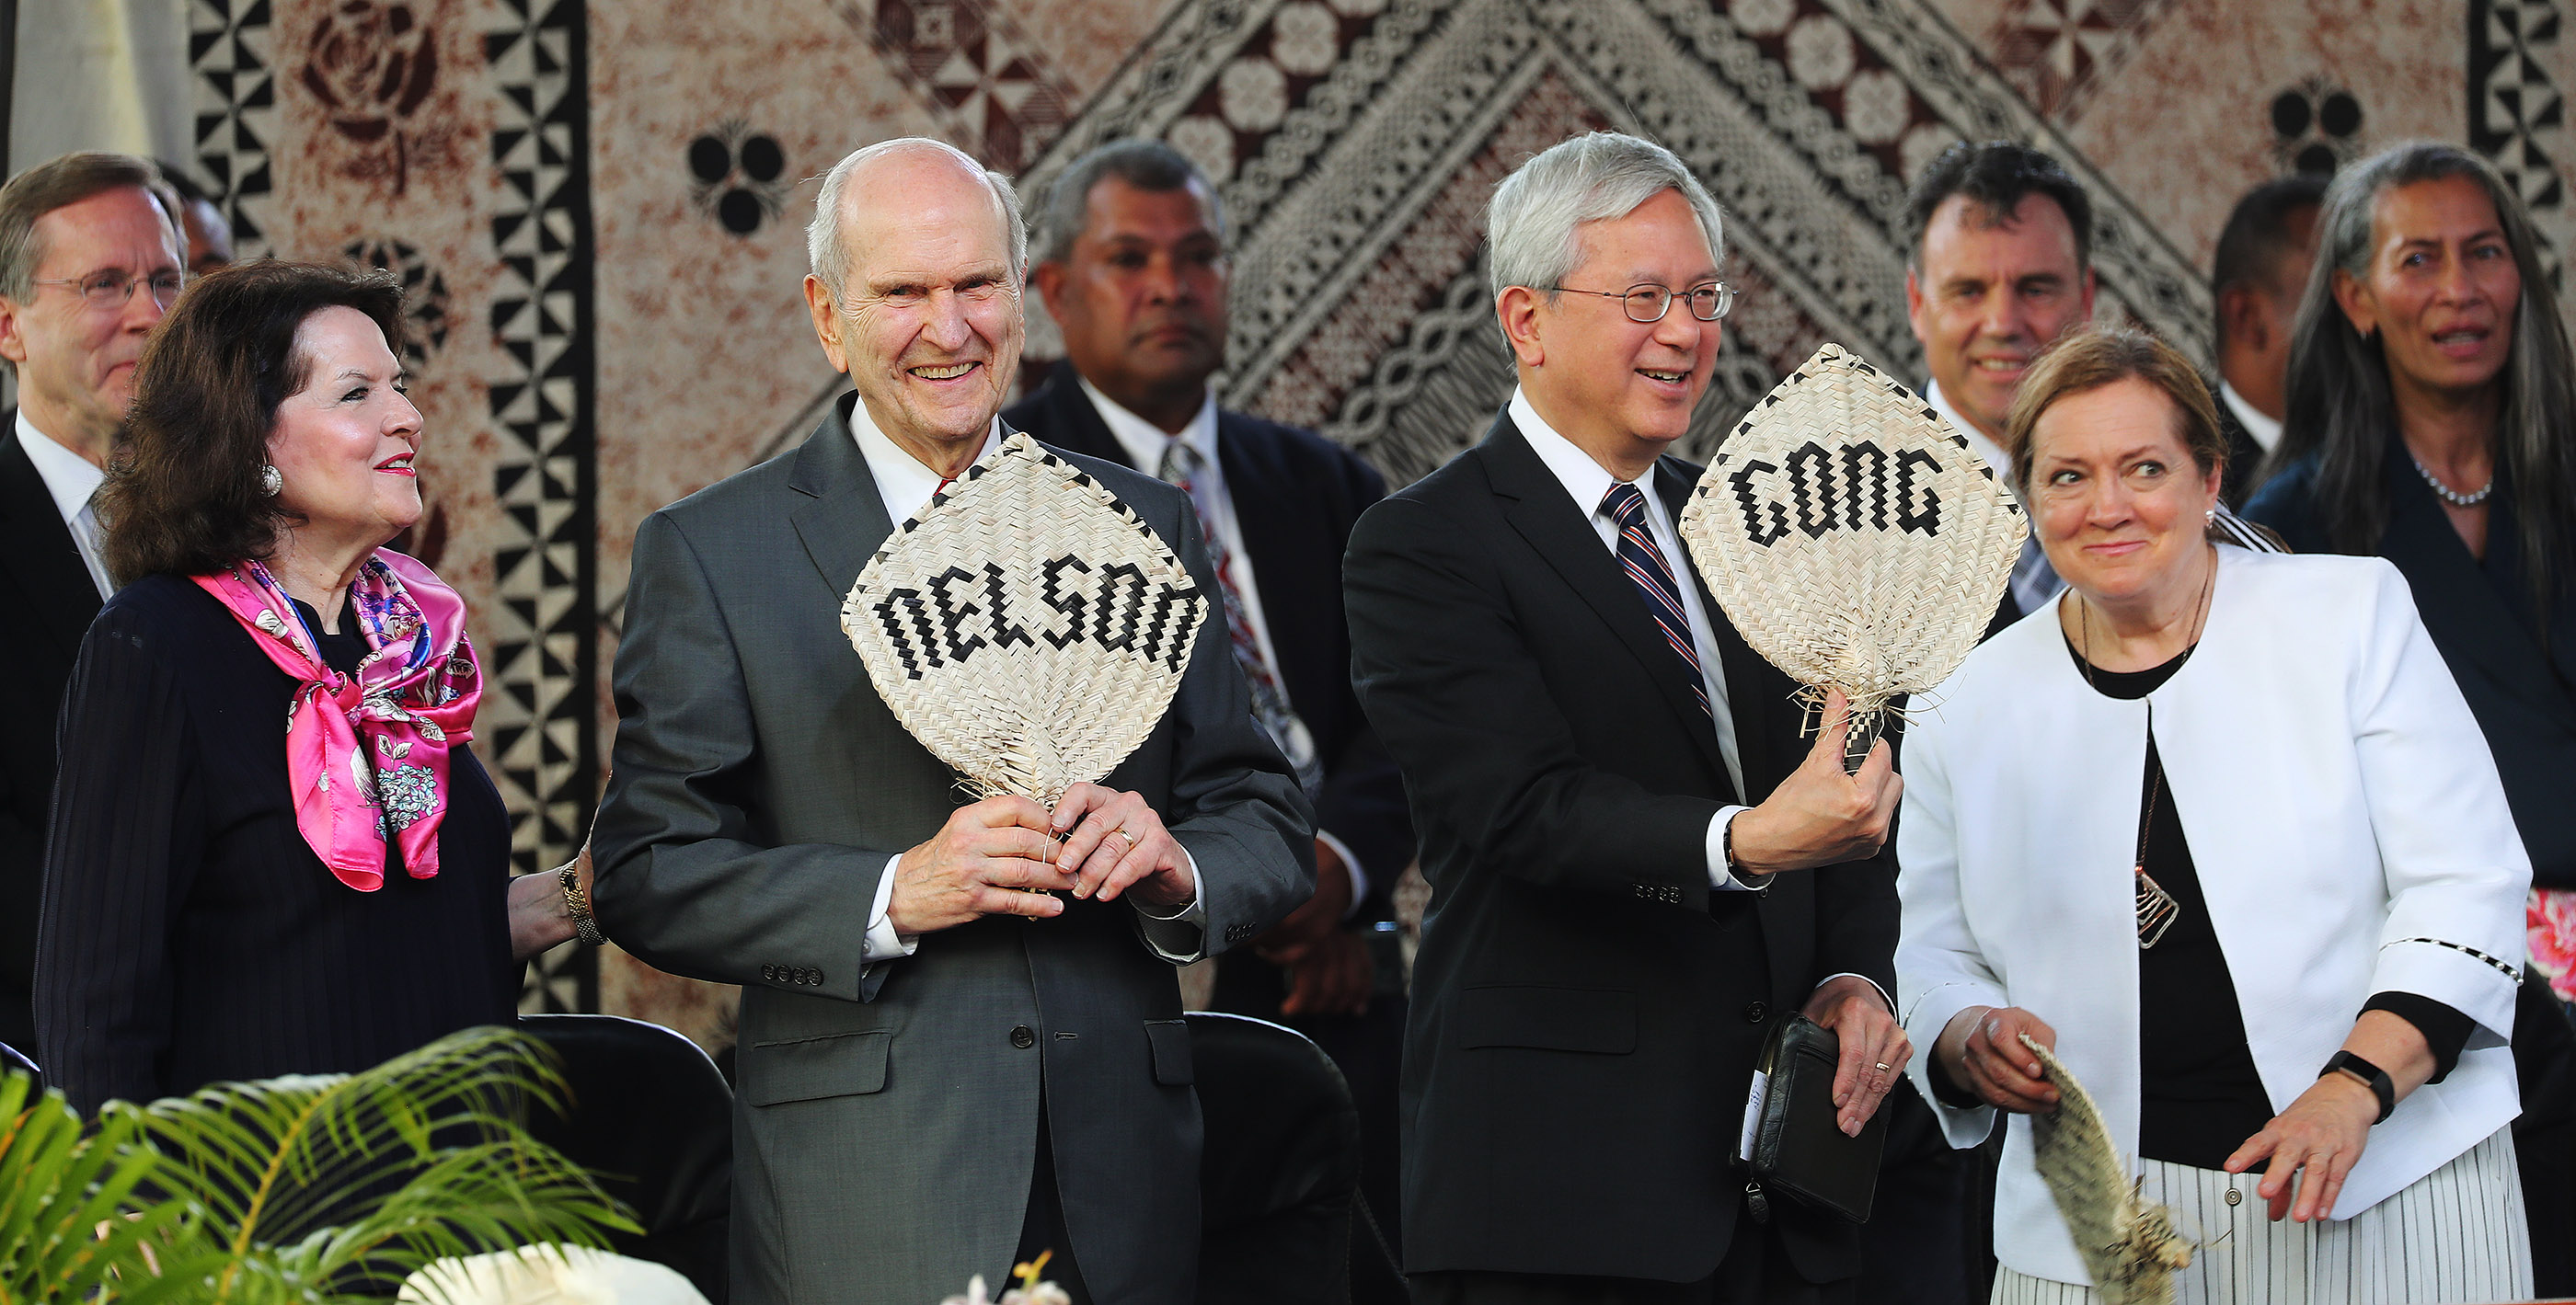 President Russell M. Nelson of The Church of Jesus Christ of Latter-day Saints and his wife, Sister Wendy Nelson, and Elder Elder Gerrit W. Gong, of the Quorum of the Twelve Apostles and his wife, Sister Susan Gong, hold fans with their names on them at a devotional at Ratu Cakobau Park stadium in Nausori, Fiji, on May 22, 2019.